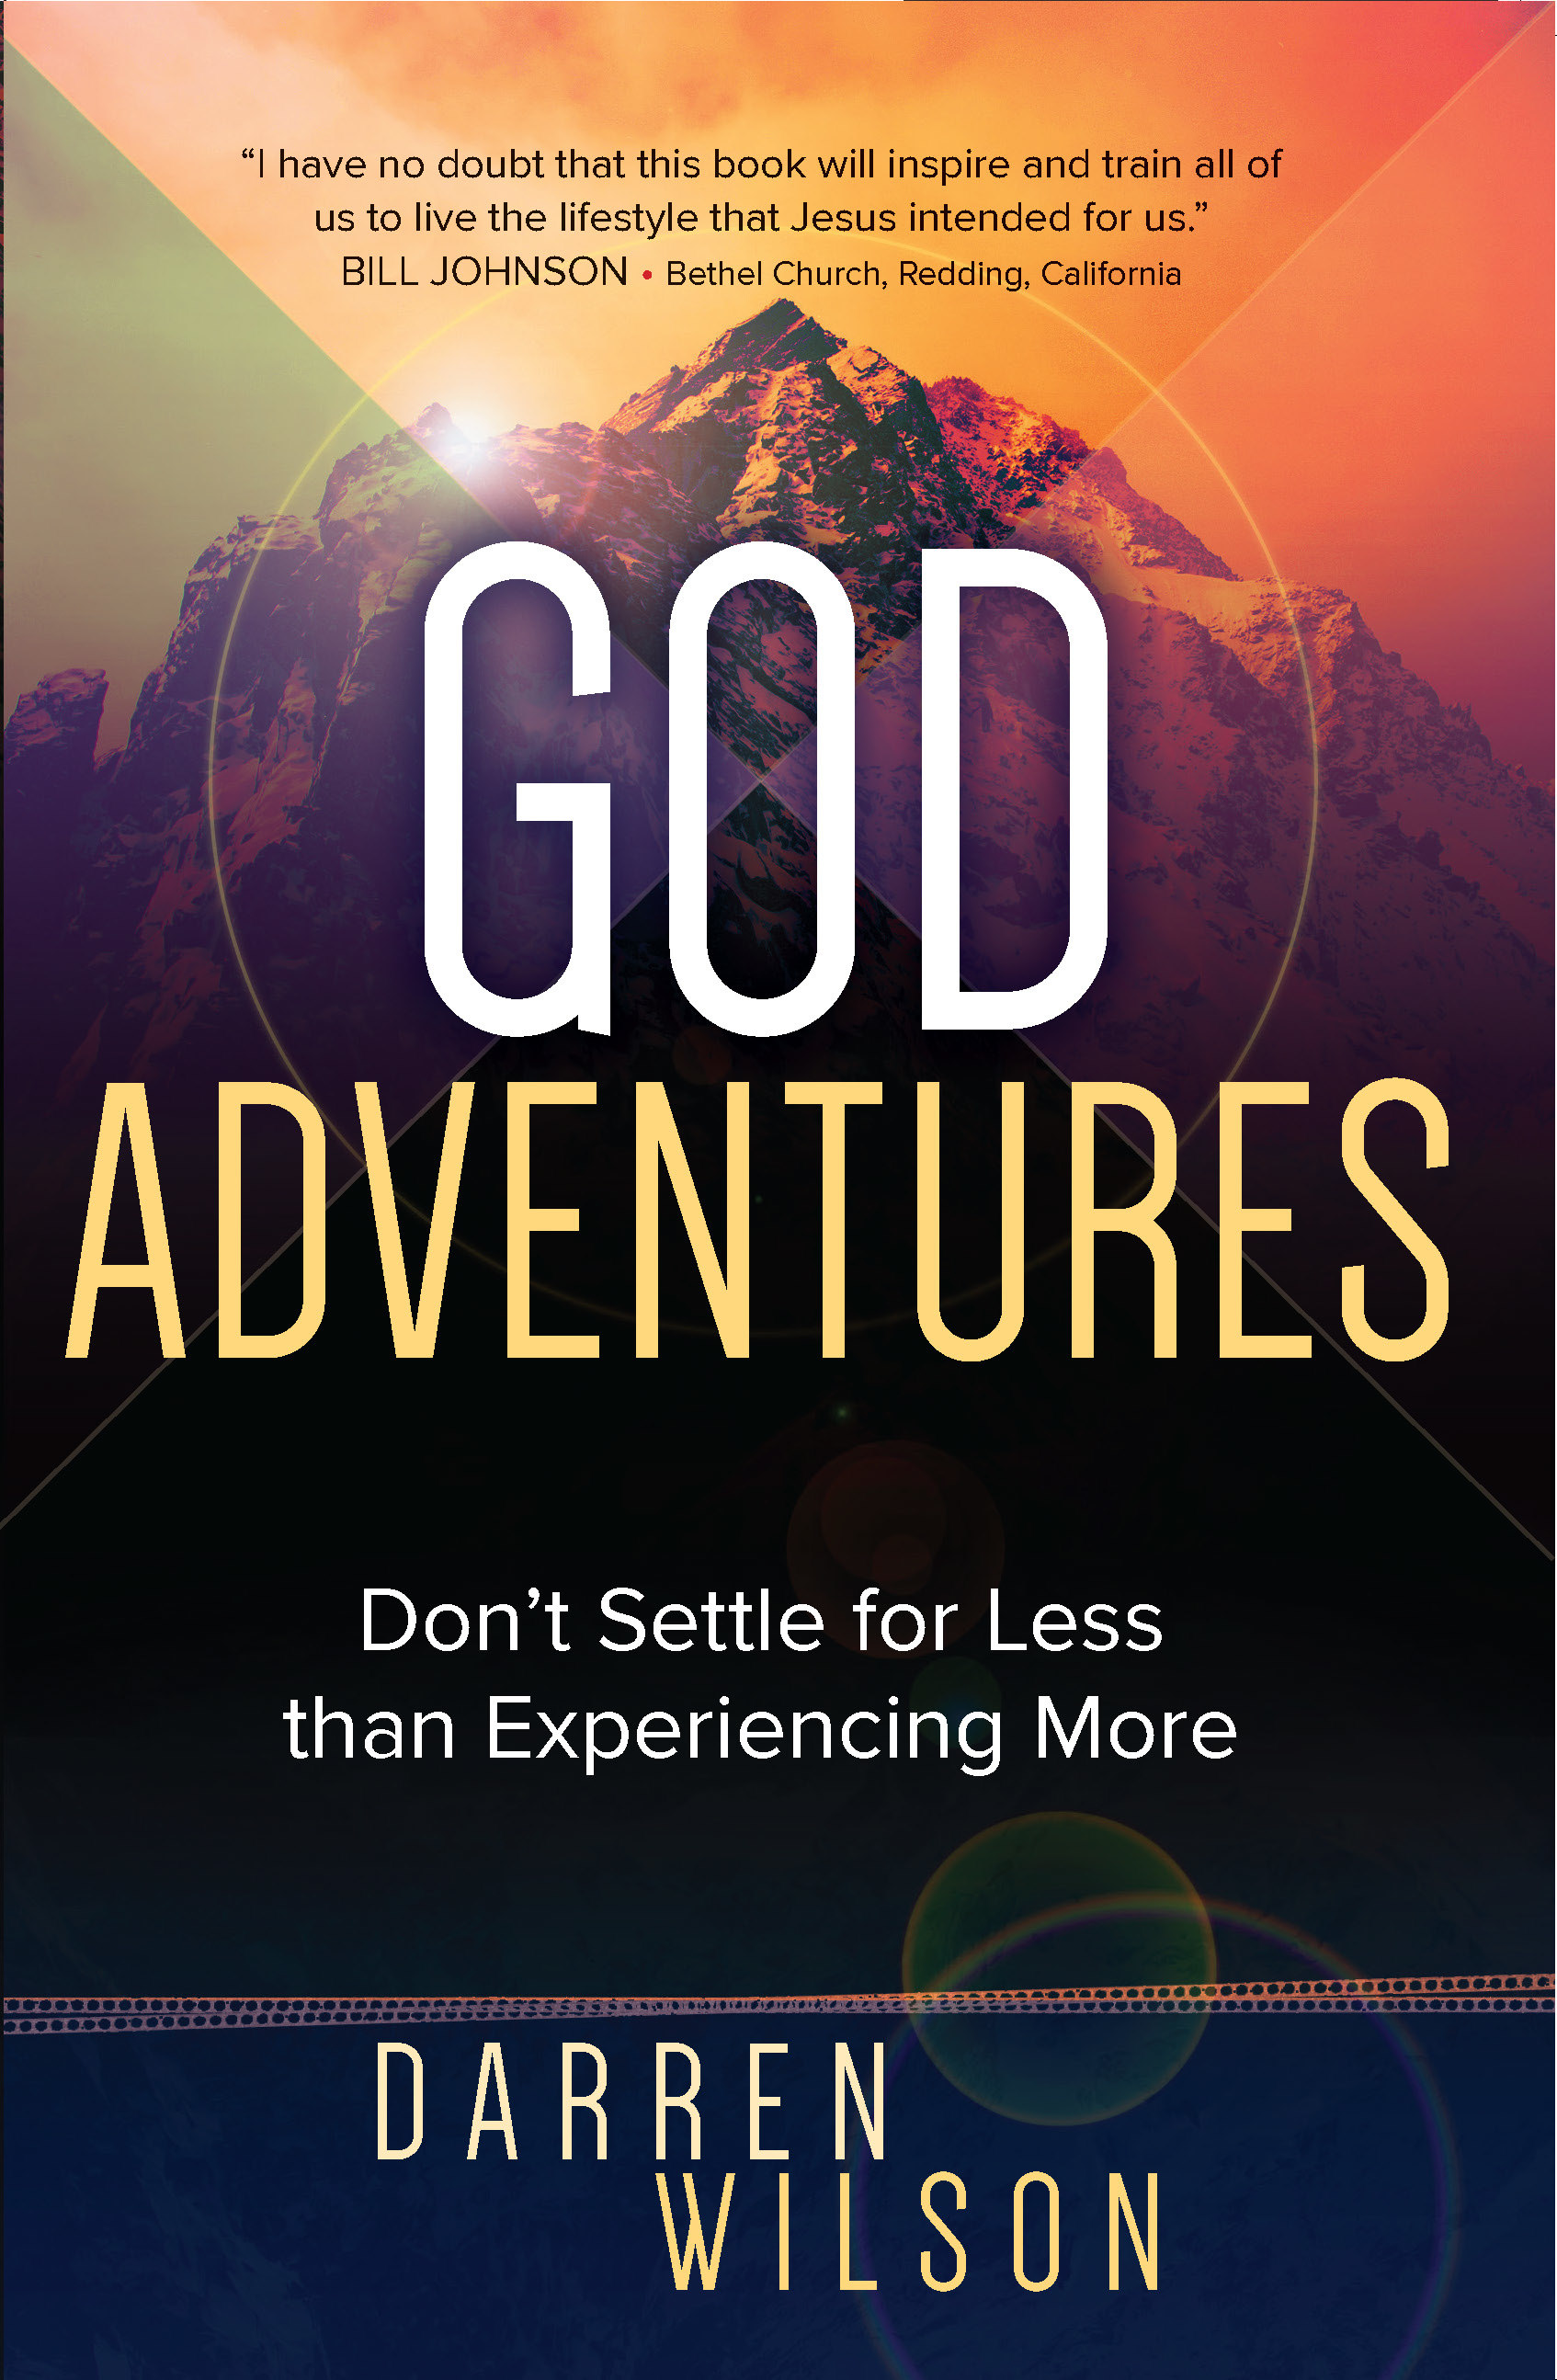 God Adventures: Don't Settle for Less than Experiencing More Darren Wilson